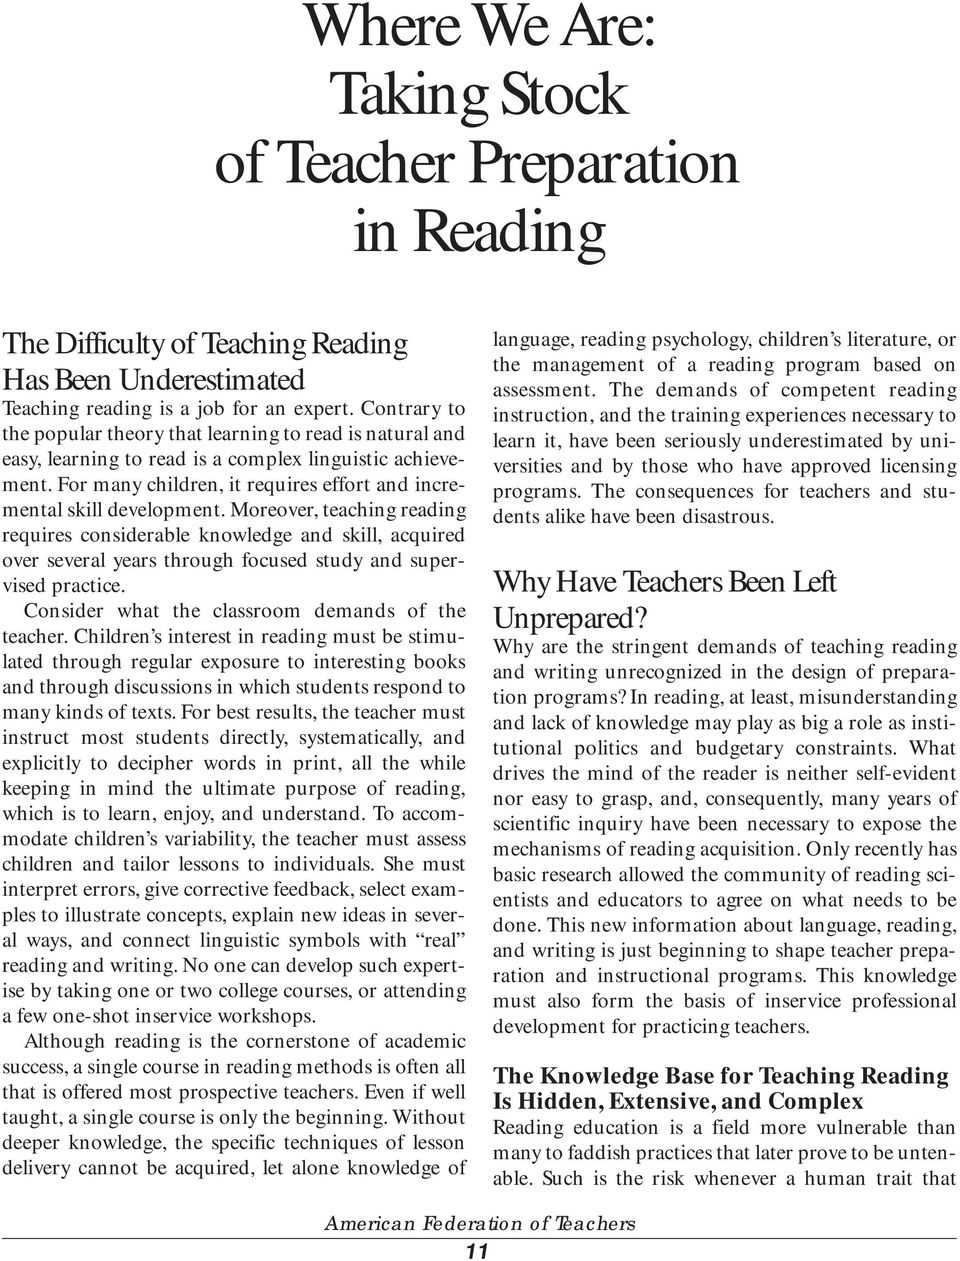 Moreover, teaching reading requires considerable knowledge and skill, acquired over several years through focused study and supervised practice. Consider what the classroom demands of the teacher.